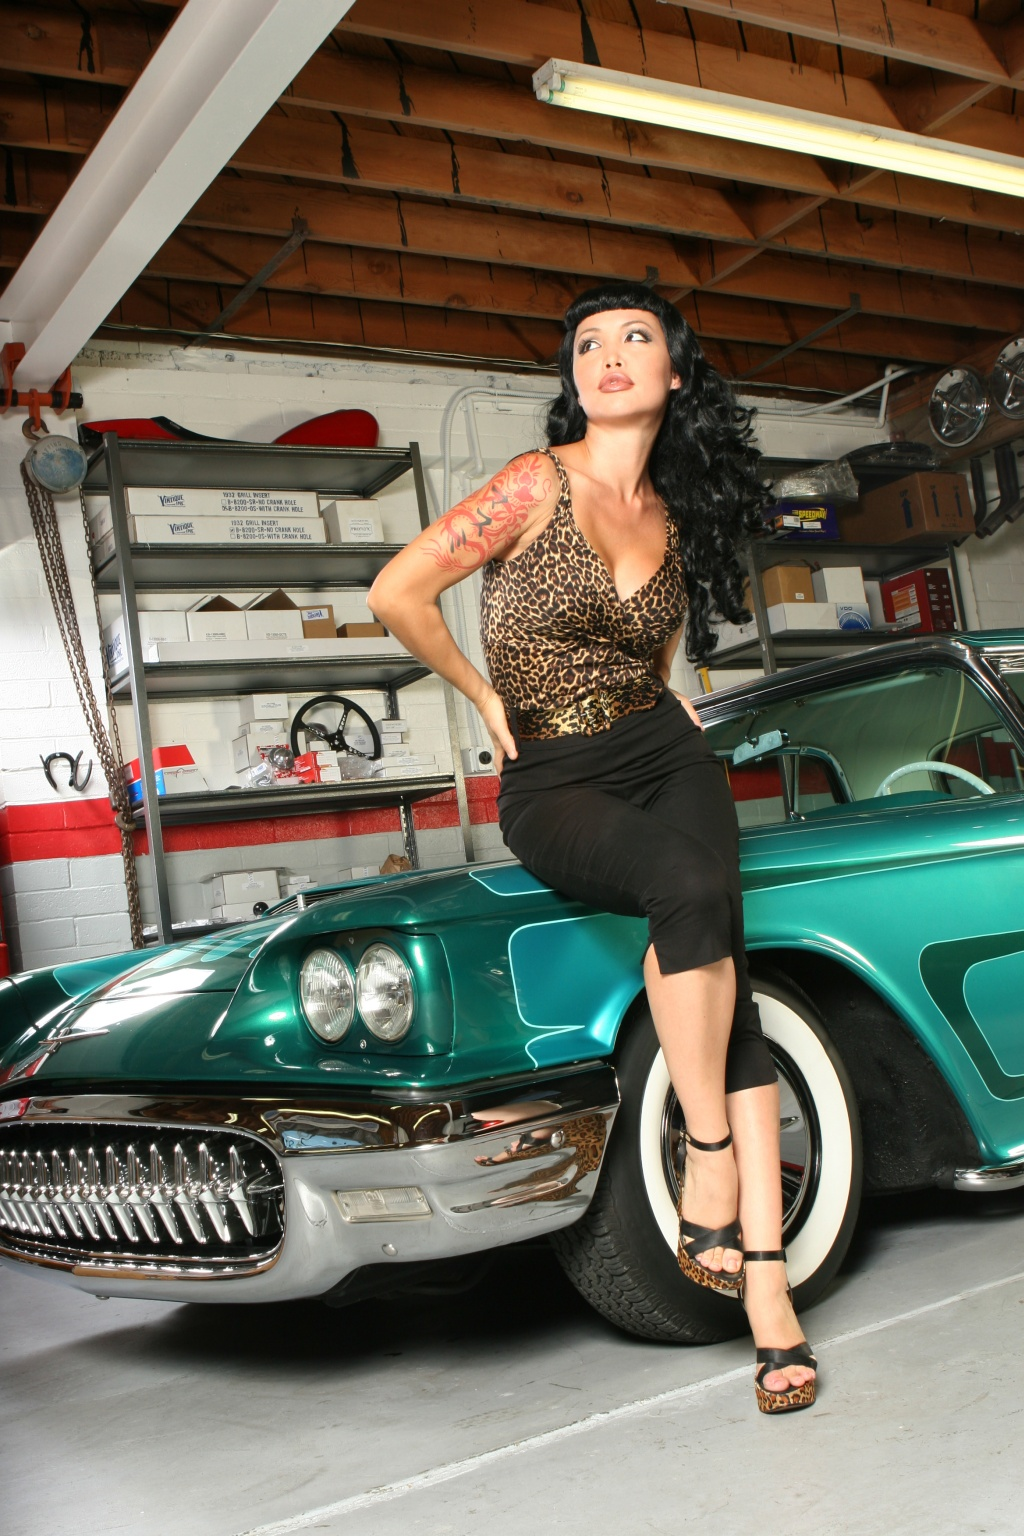 Hot-rod-pinup-Masuimi-Max-1.jpg